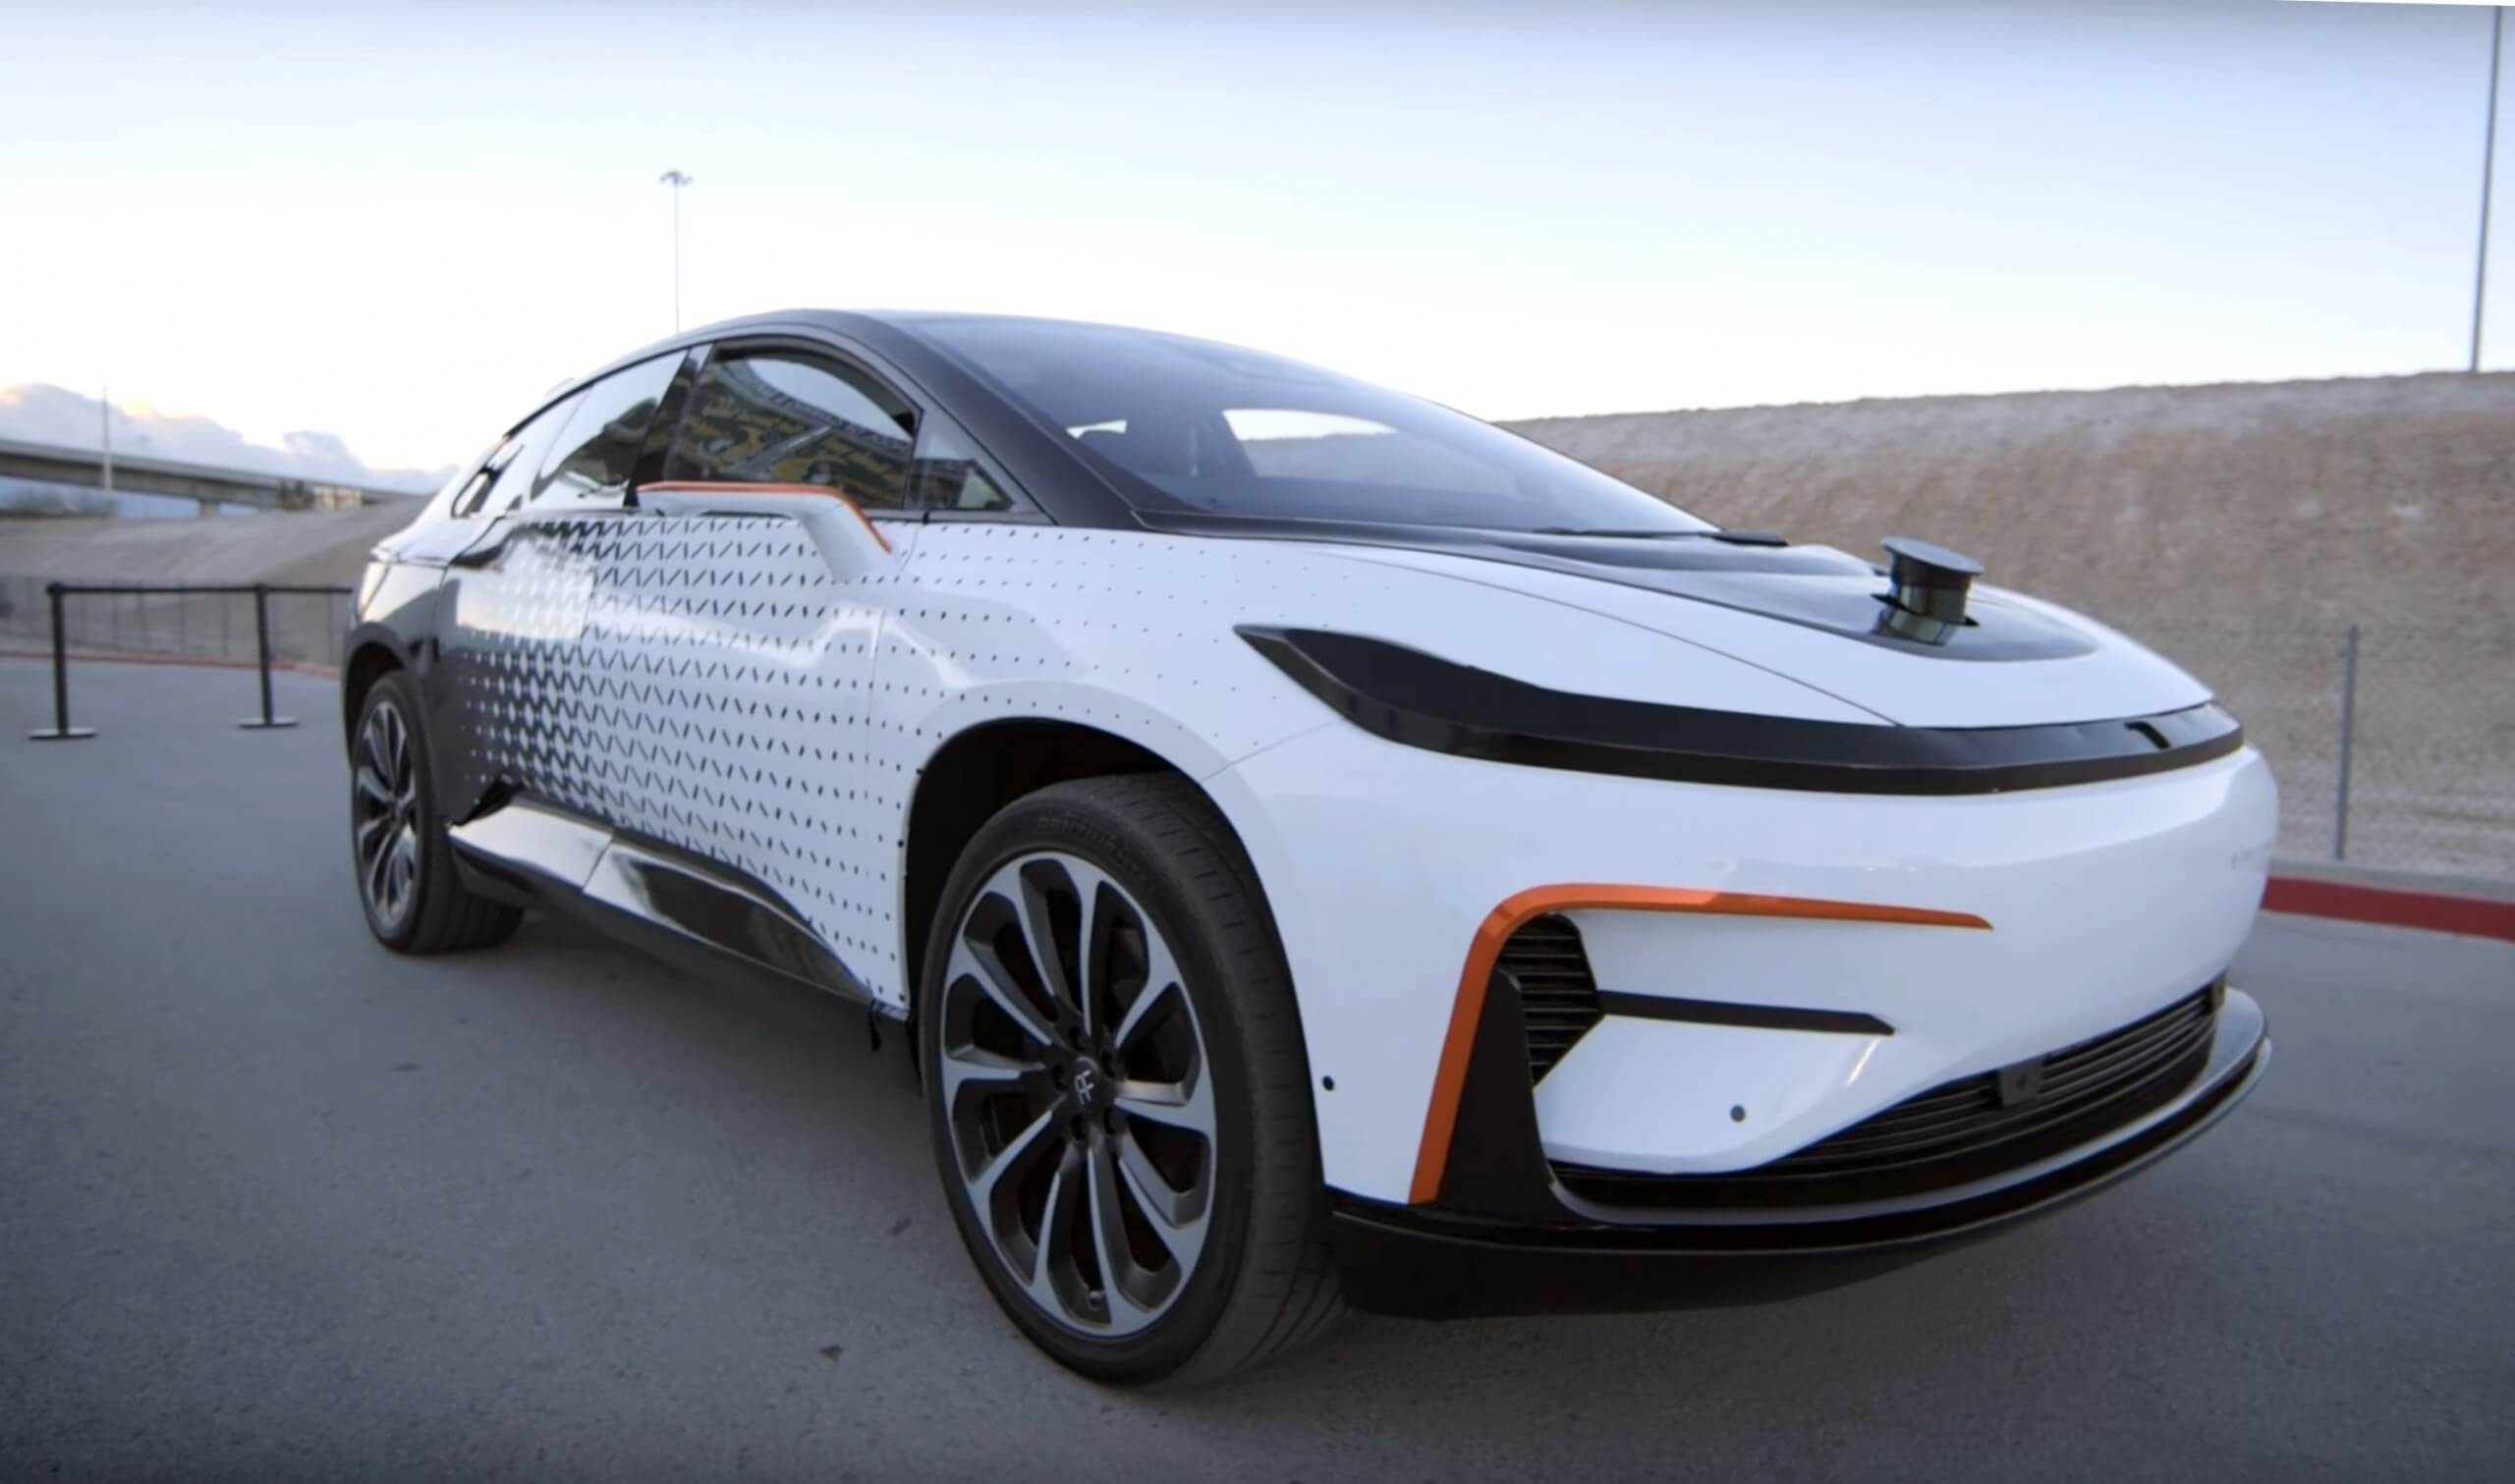 Faraday Future And Video Game Maker The9 Enter Deal To Produce